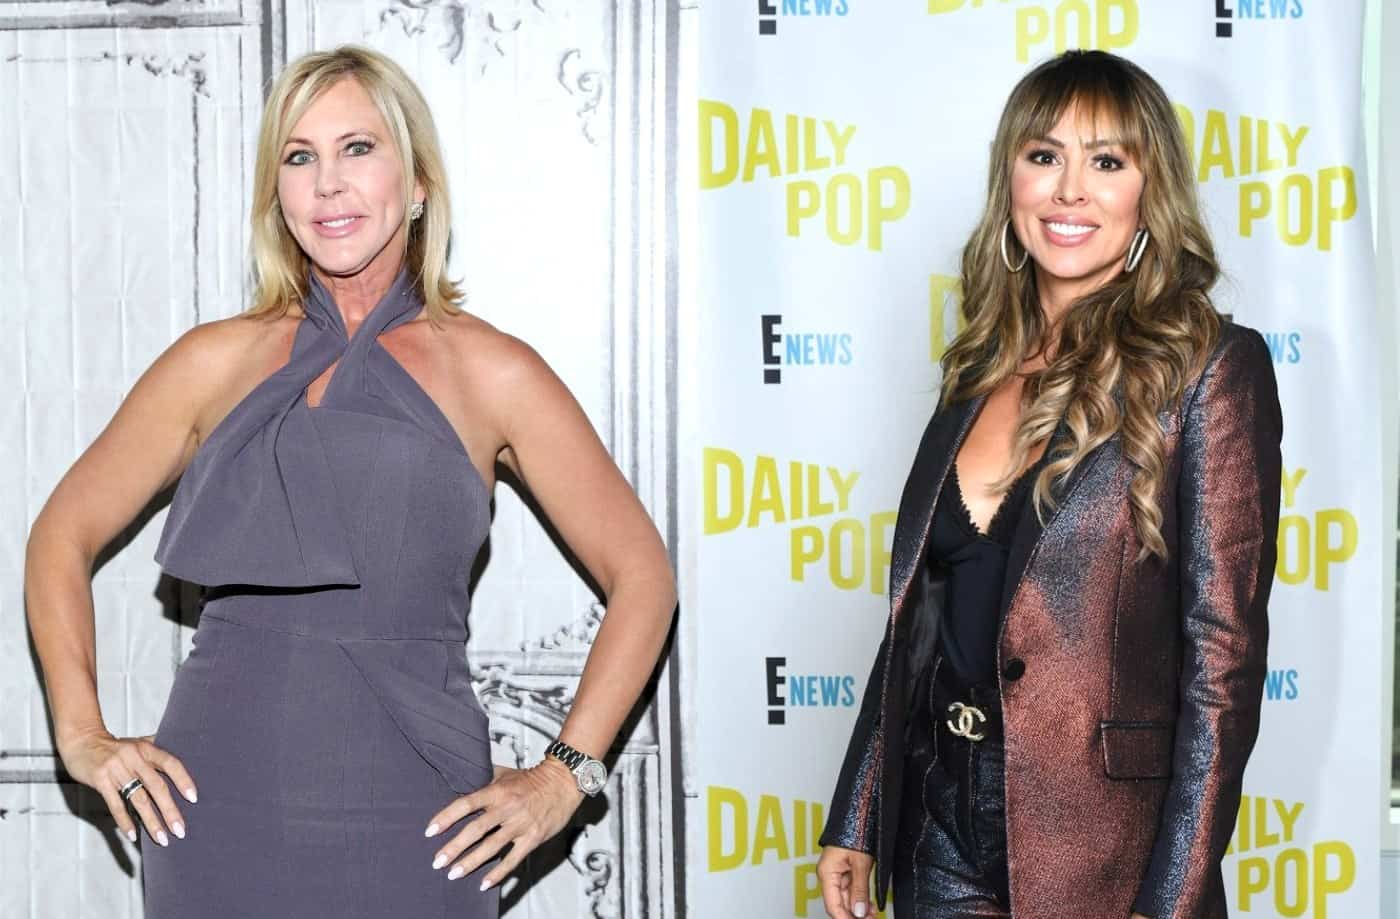 Vicki Gunvalson and Kelly Dodd's Feud Reaches New Low